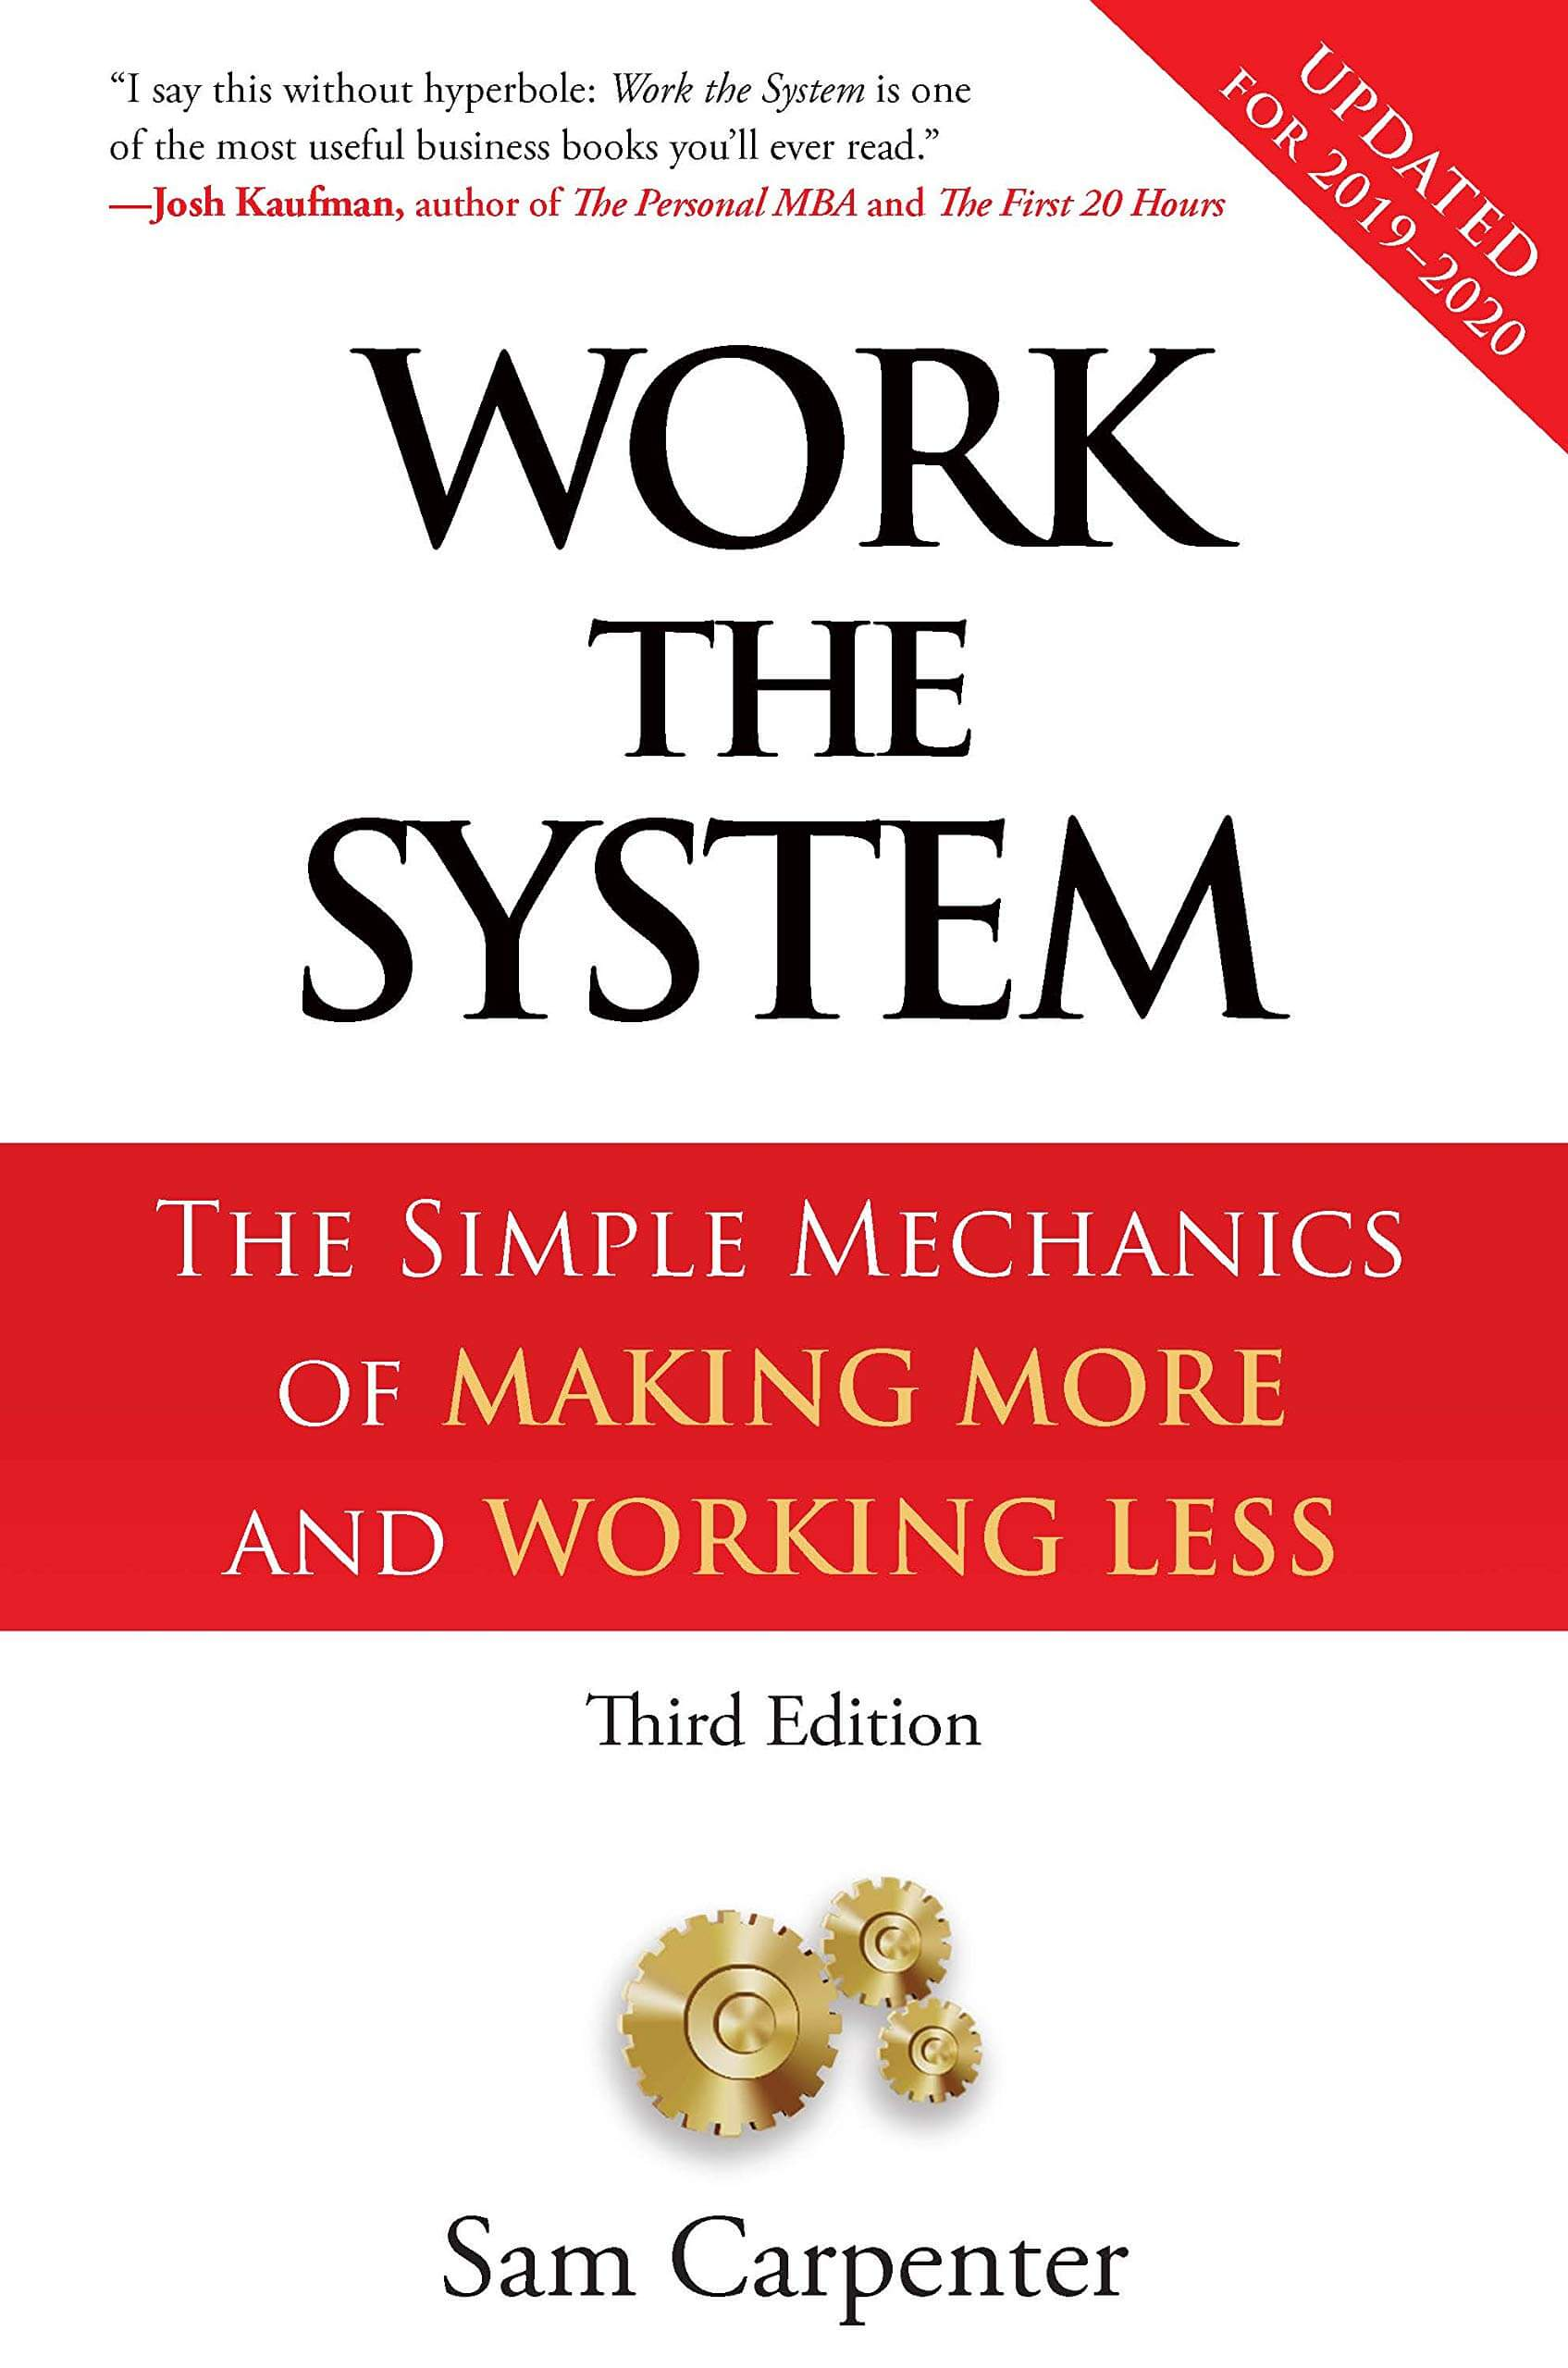 Work-the-System-The-Simple-Mechanics-of-Making-More-and-working-less